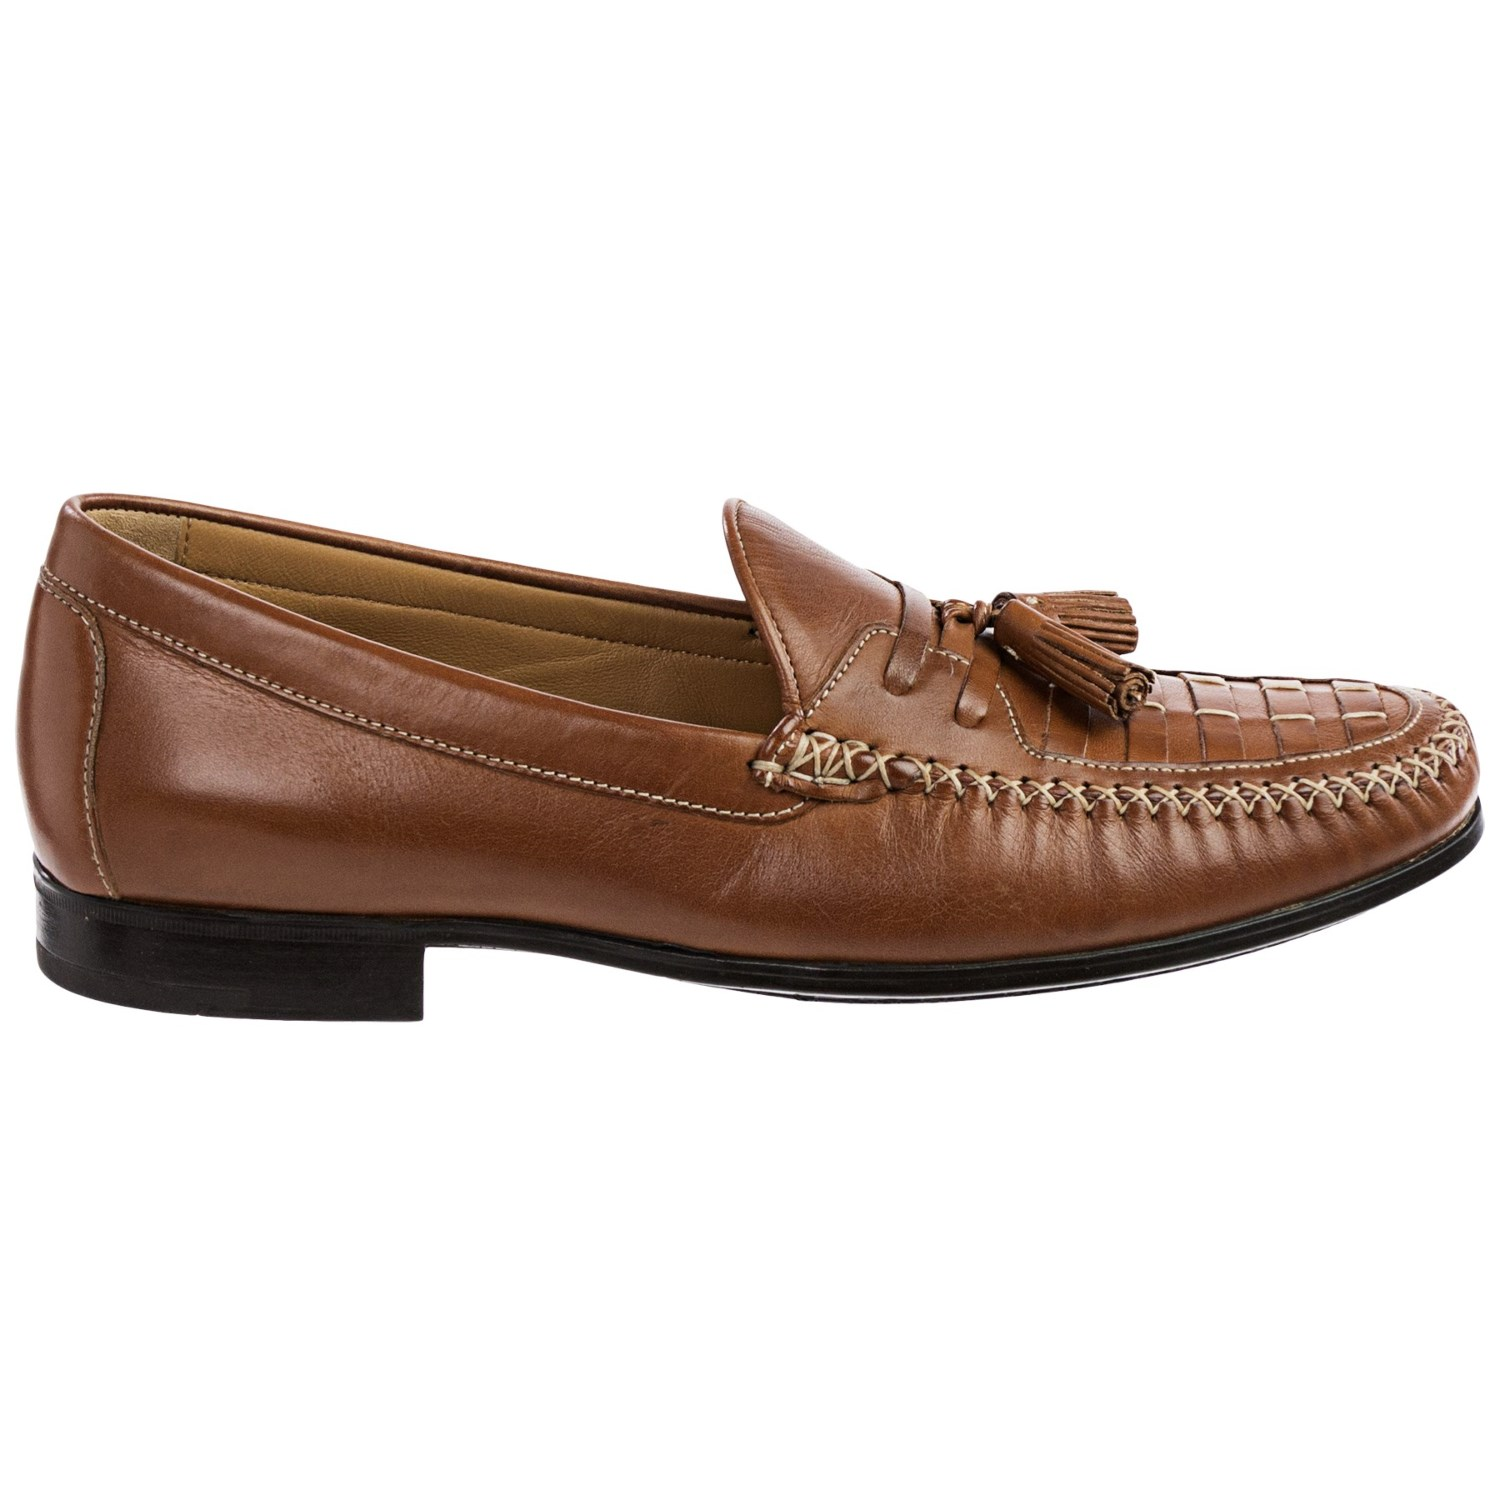 Dansko Shoes Jcpenney